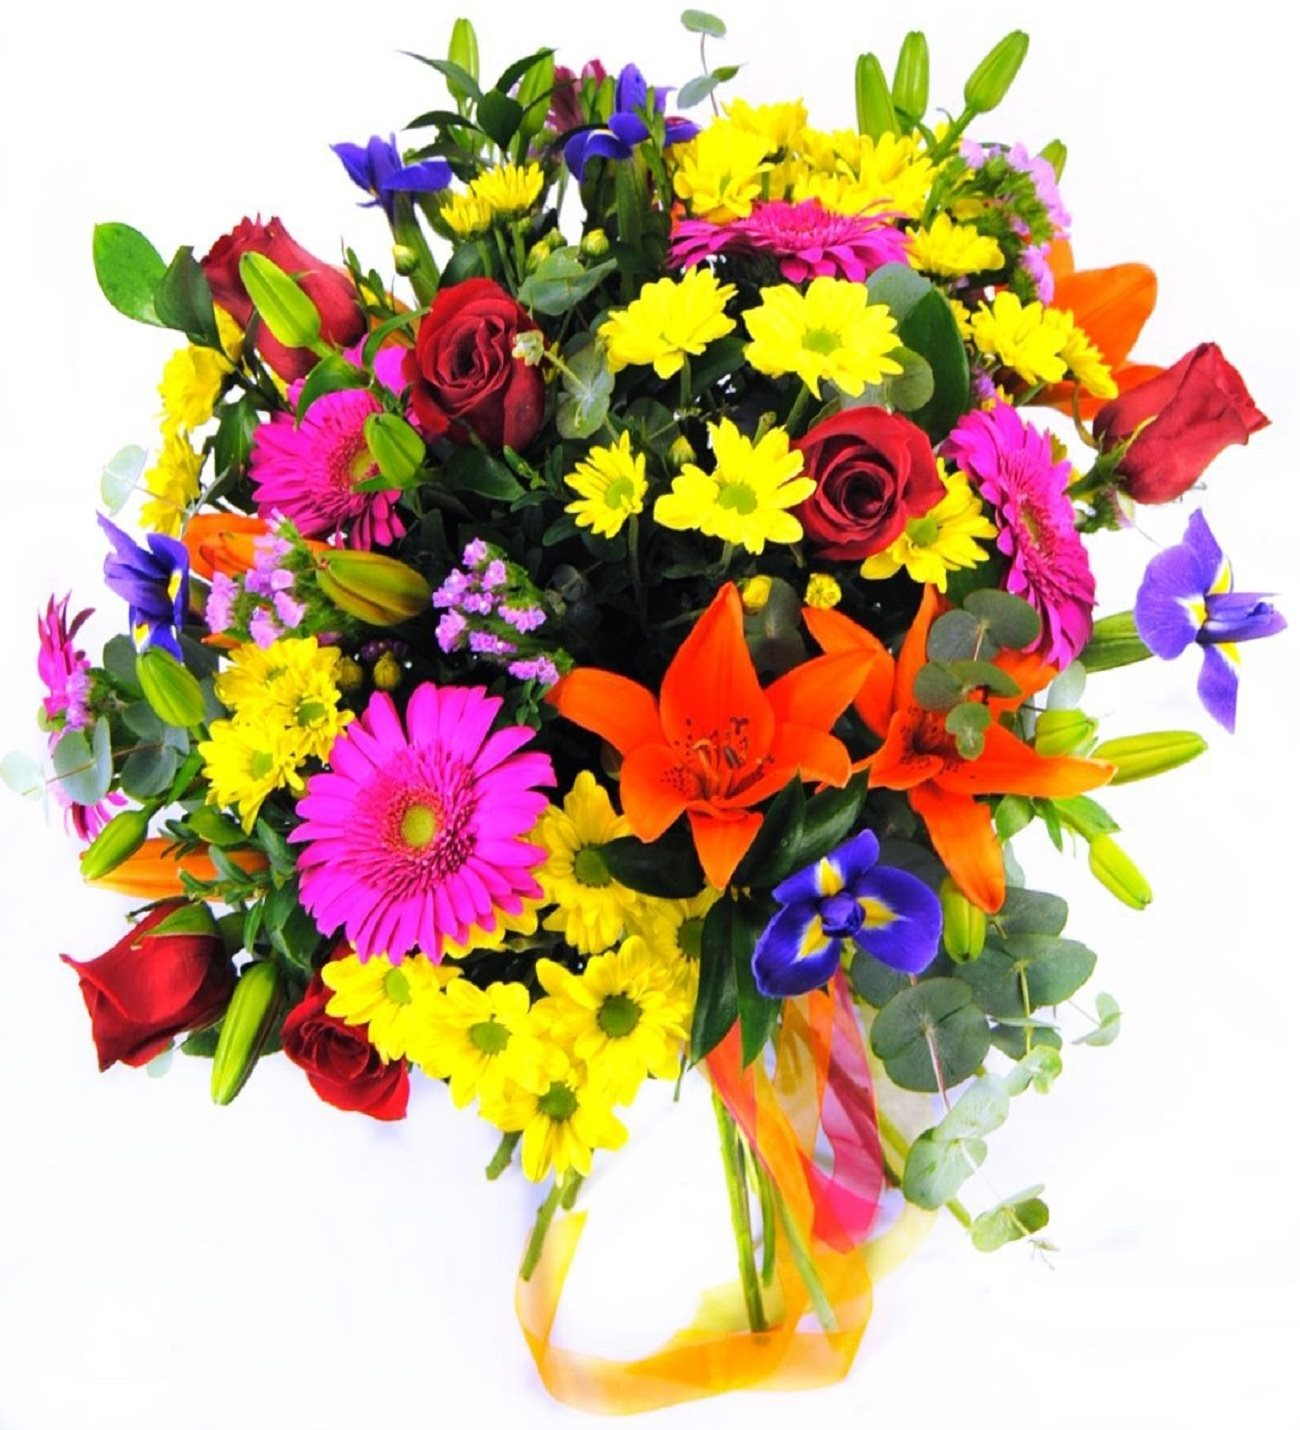 Seychelles roses lilies iris and gerberas seychelles roses lilies iris gerberas and daisies izmirmasajfo